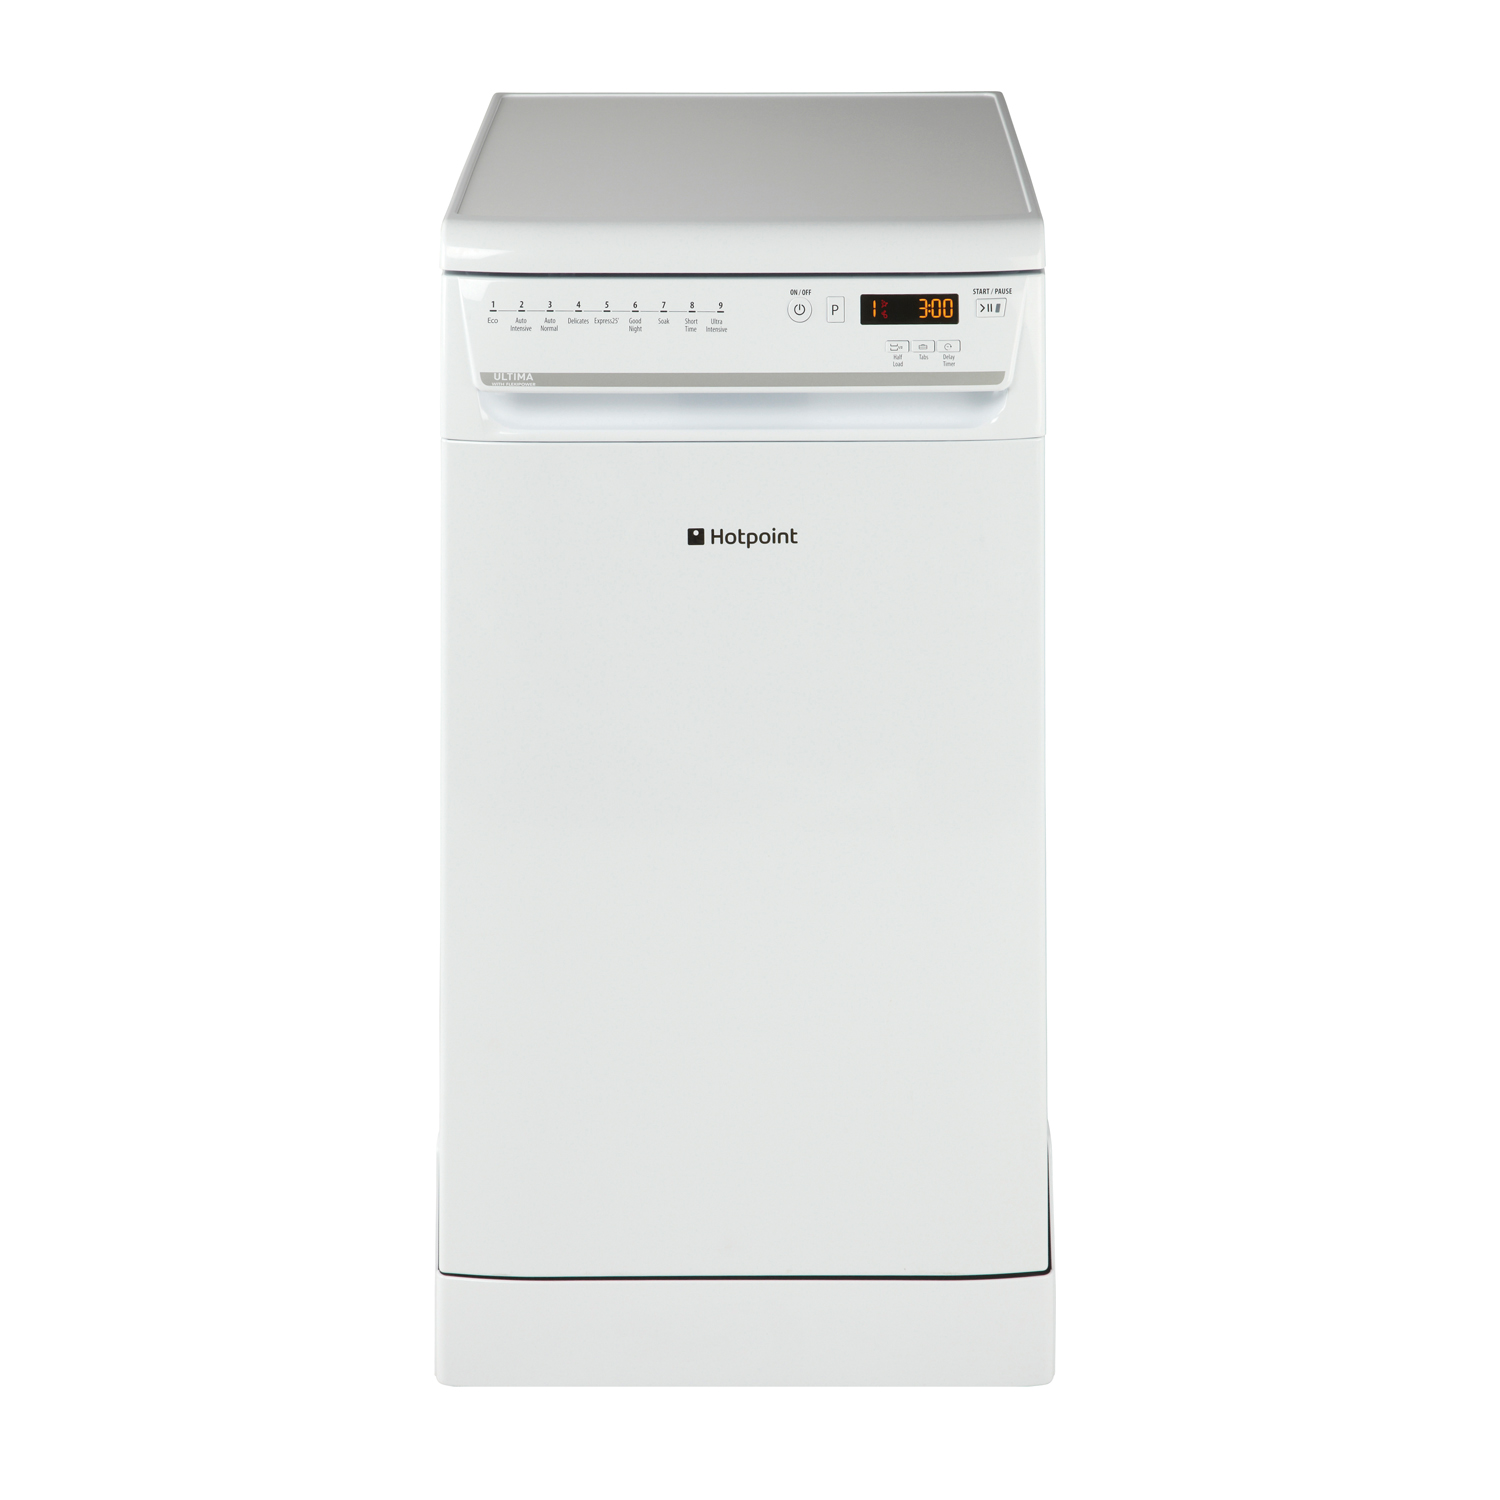 hotpoint ultima siuf22111p slimline dishwasher white ebay. Black Bedroom Furniture Sets. Home Design Ideas